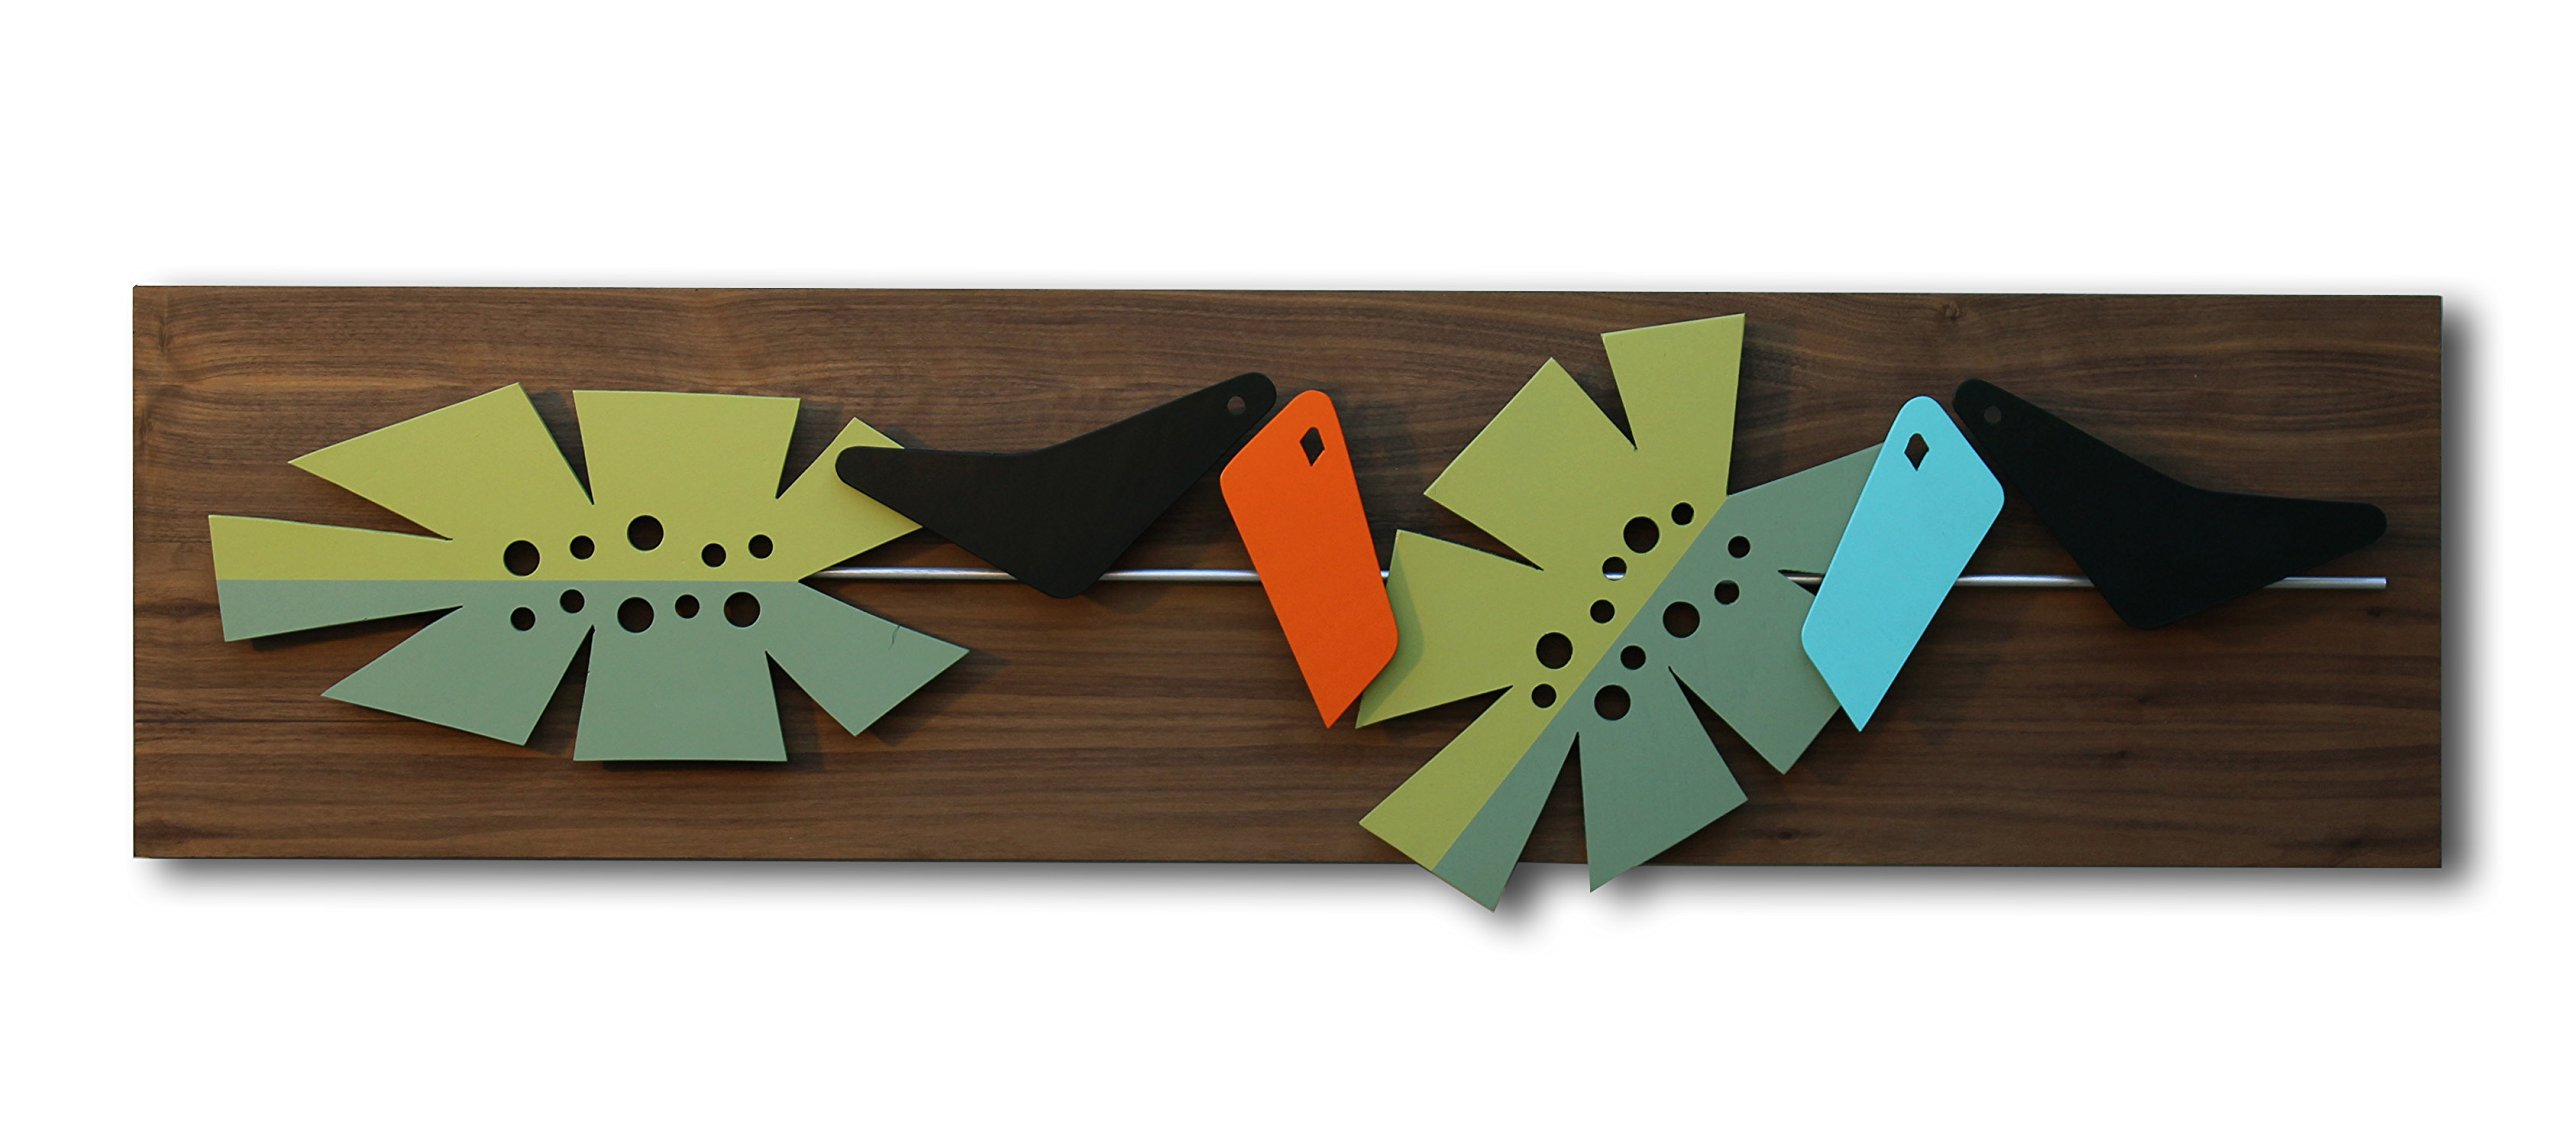 Mid Century Modern Wall Art: IN THE JUNGLE - Painting, Hanging Sculpture - Abstract Wood and Metal Artwork in 3D